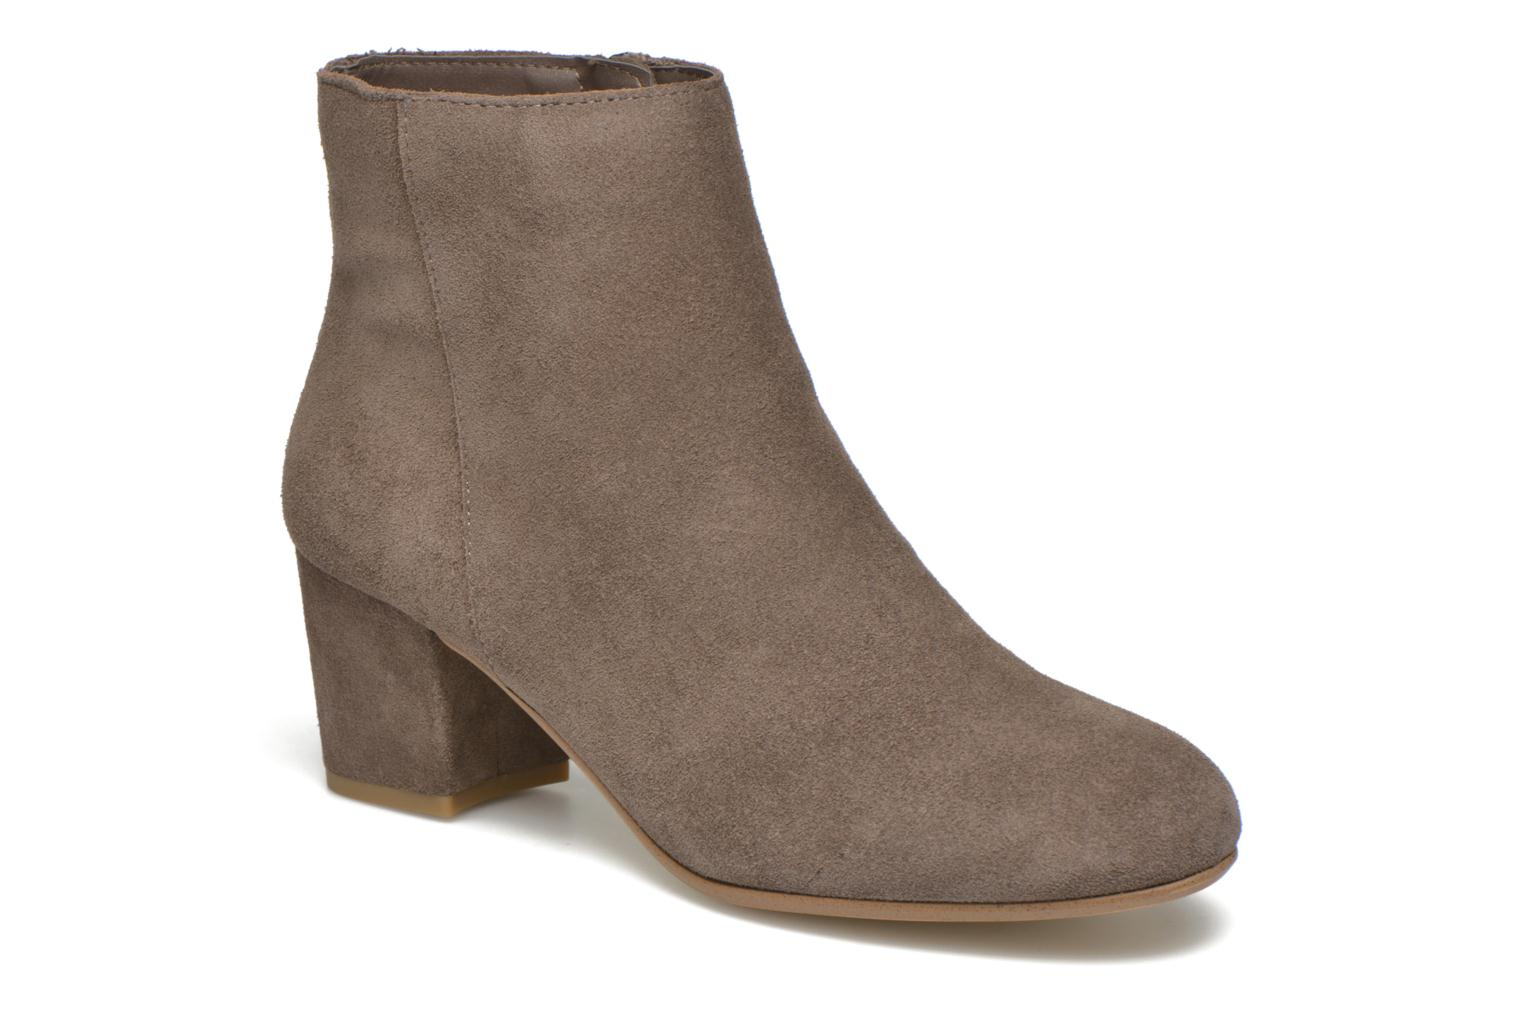 Marques Chaussure femme Steve Madden femme Holster 10002 Taupe Suede